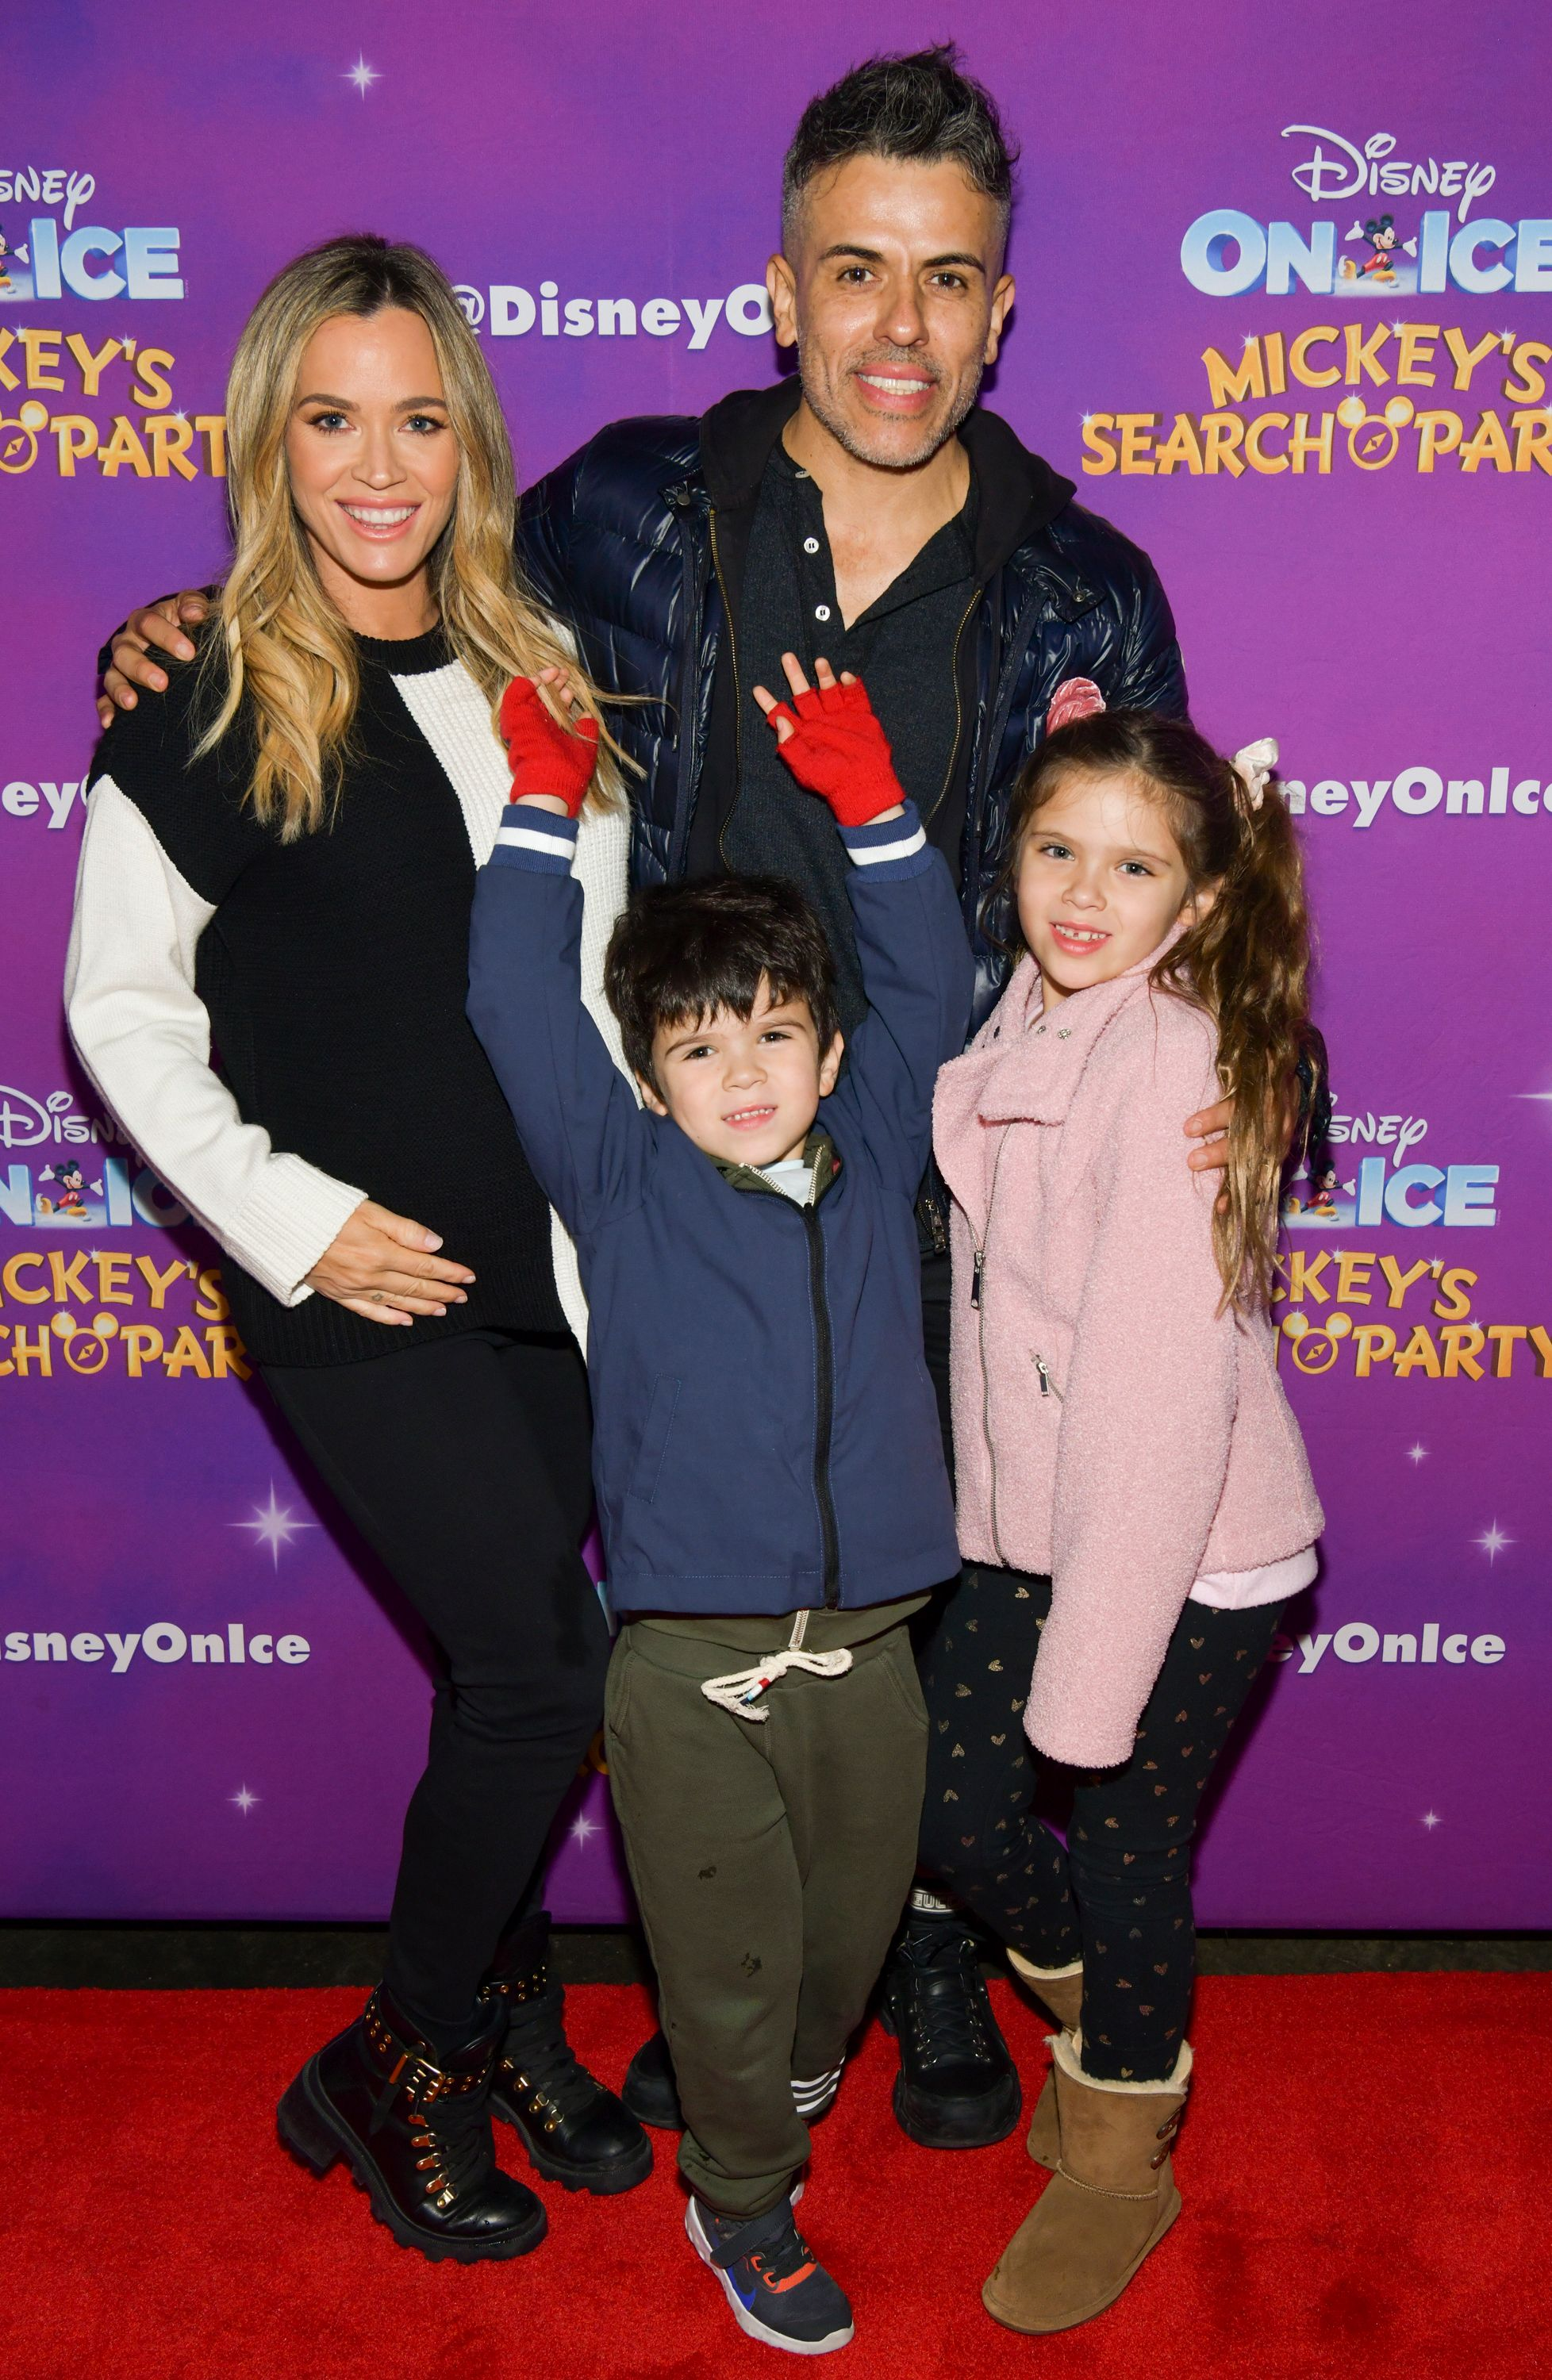 """(L-R) Teddi Mellencamp, Cruz Arroyave, Edwin Arroyave, and Slate Arroyave during the 2019 Disney On Ice """"Mickey's Search Party"""" at Staples Center on December 13, 2019 in Los Angeles, California.   Source: Getty Images"""